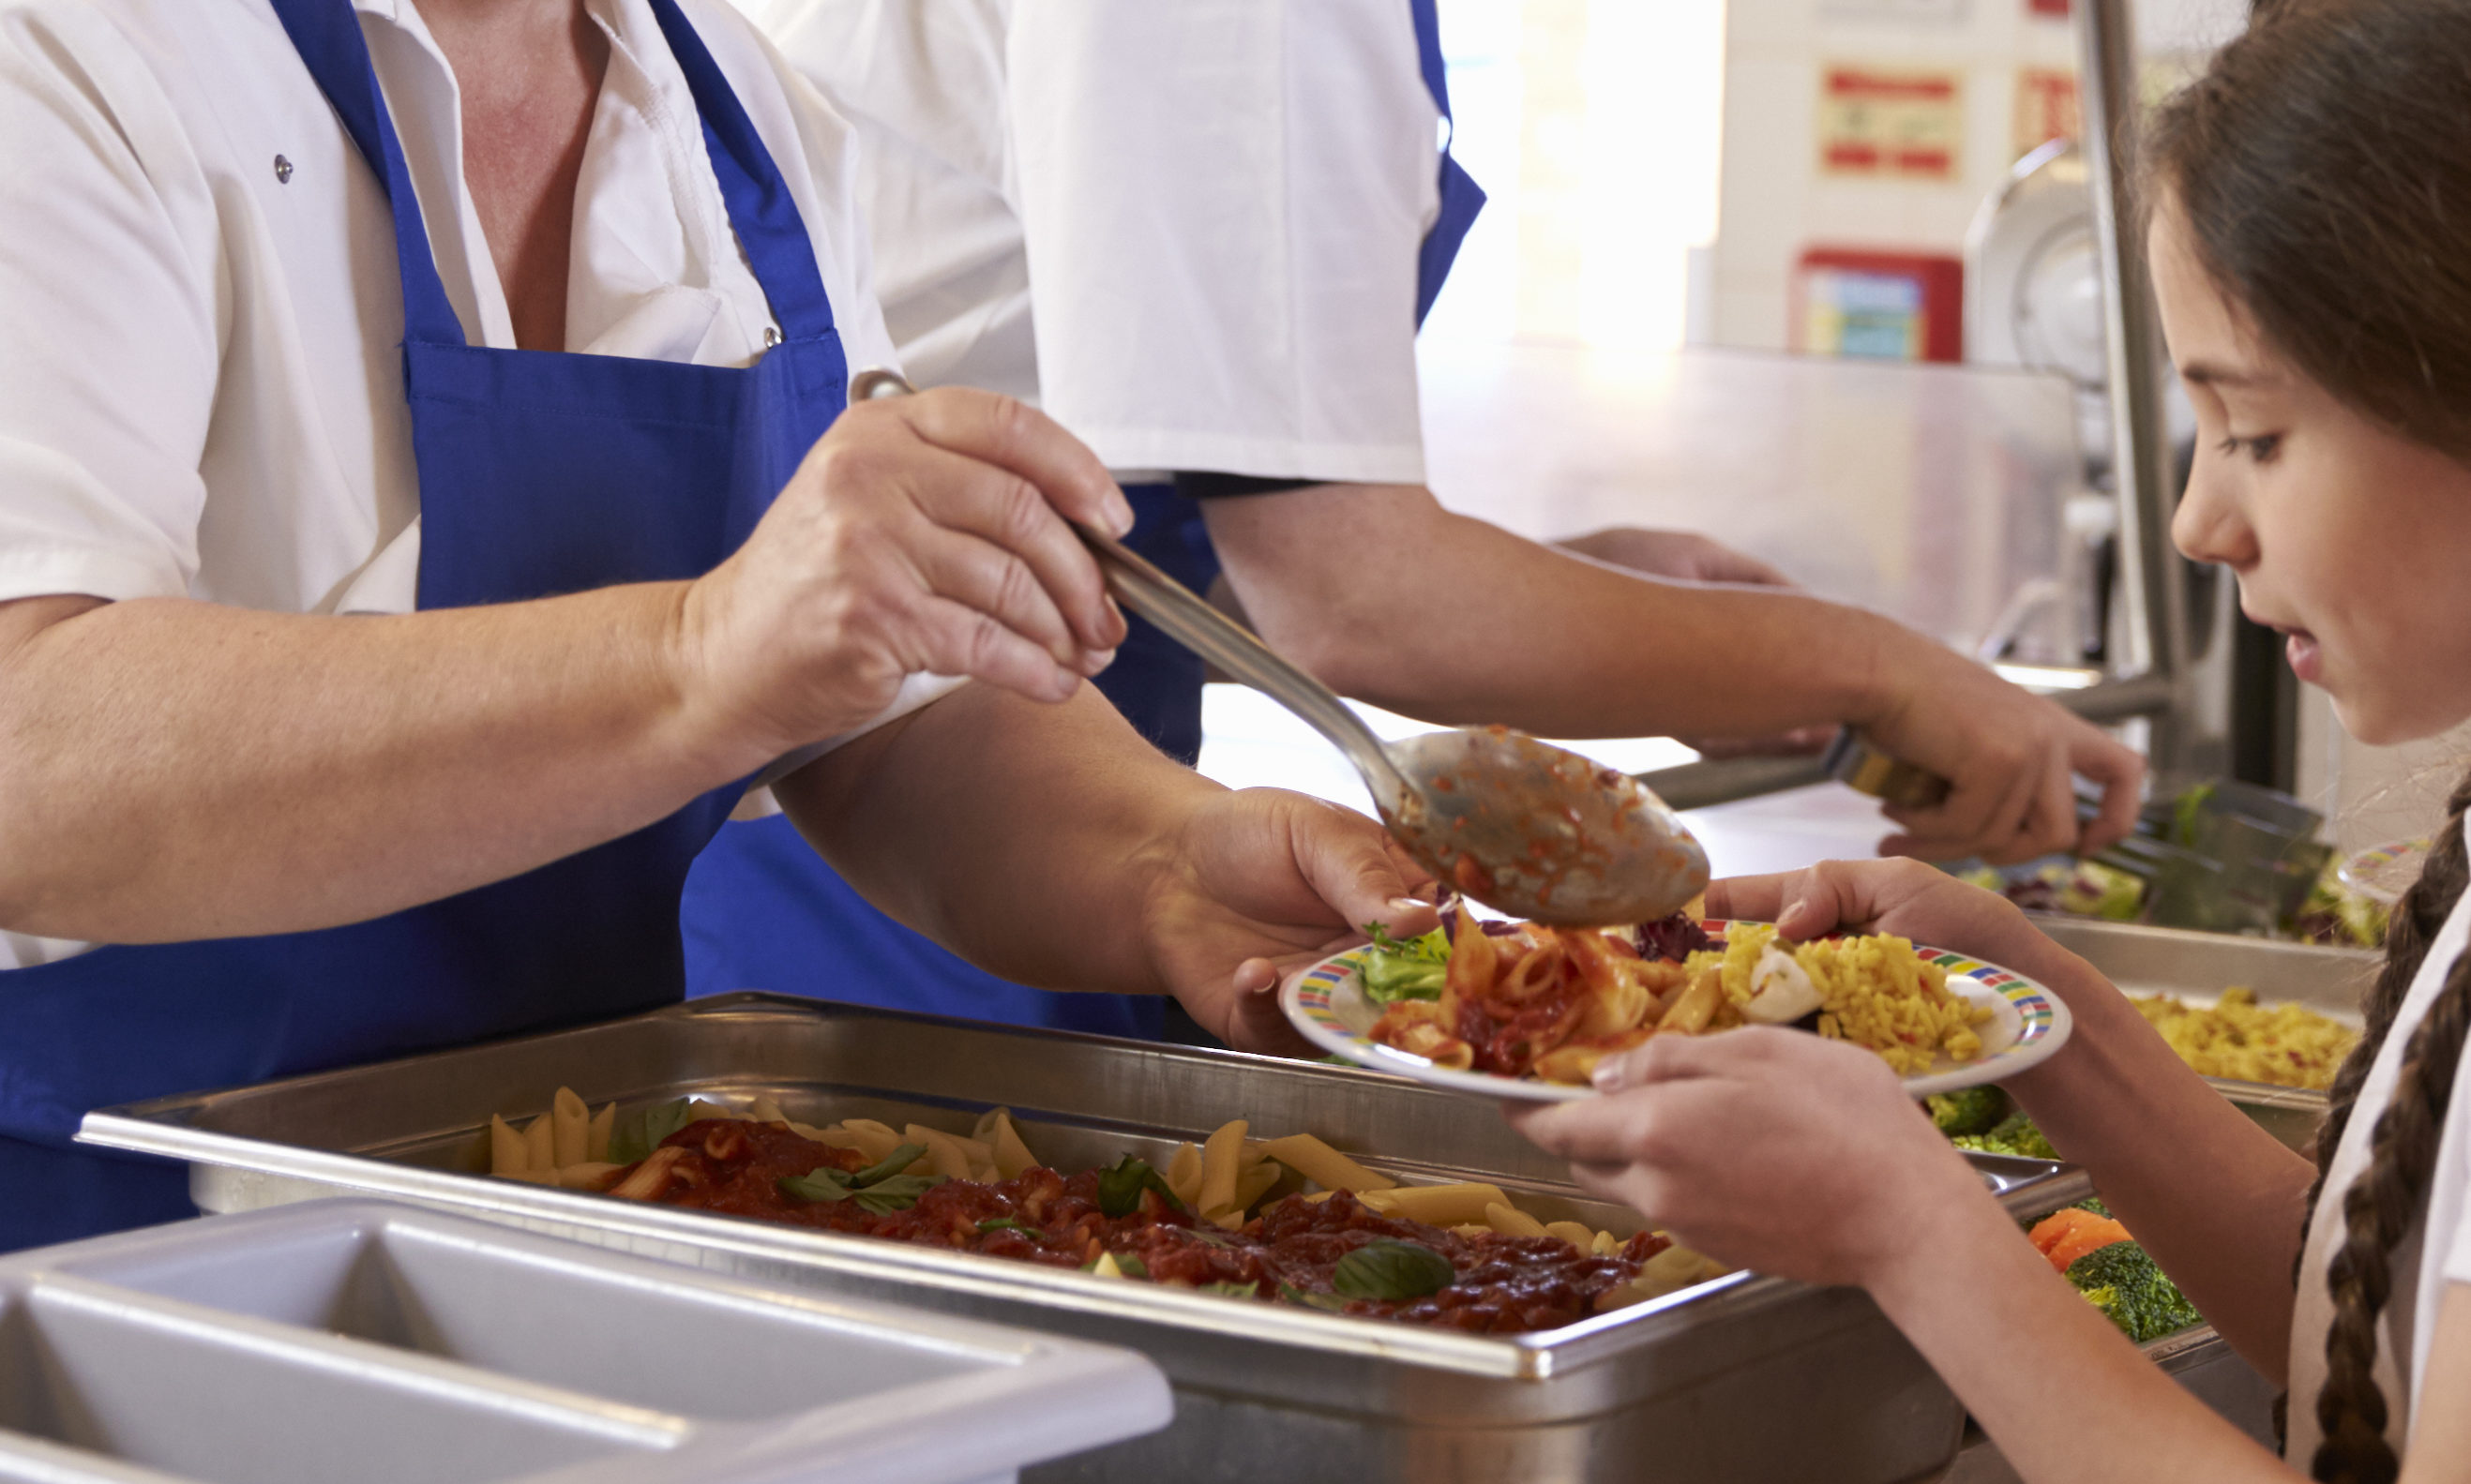 Some school kitchens have not been inspected for a decade